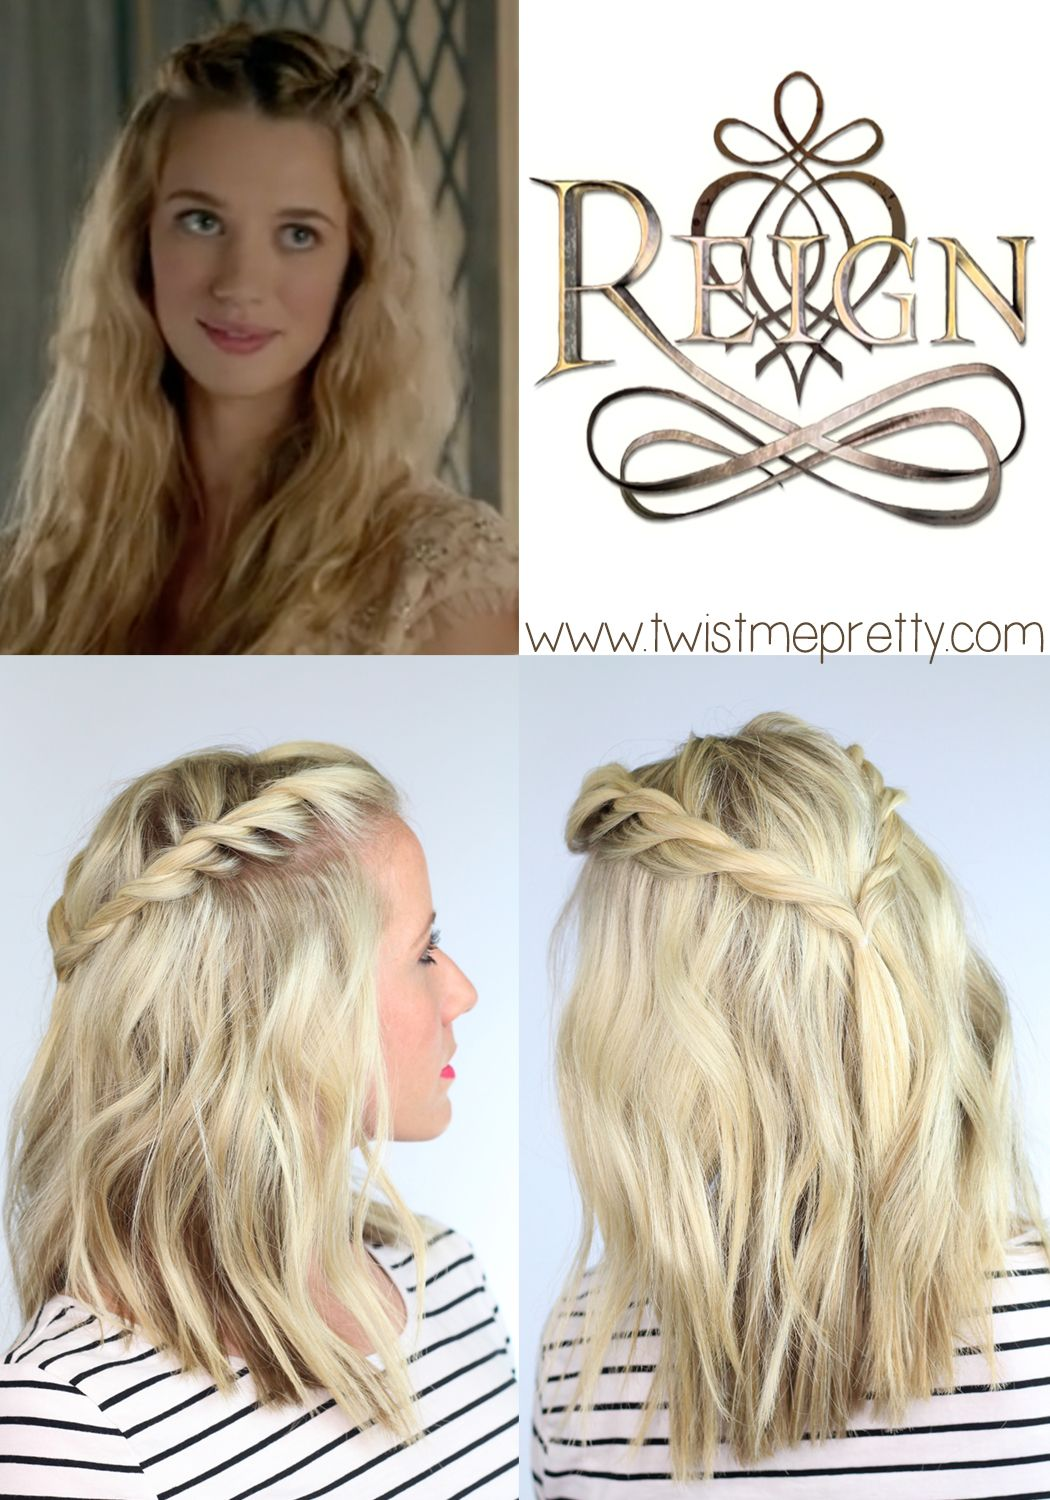 Hair Style Tv Shows by wearticles.com